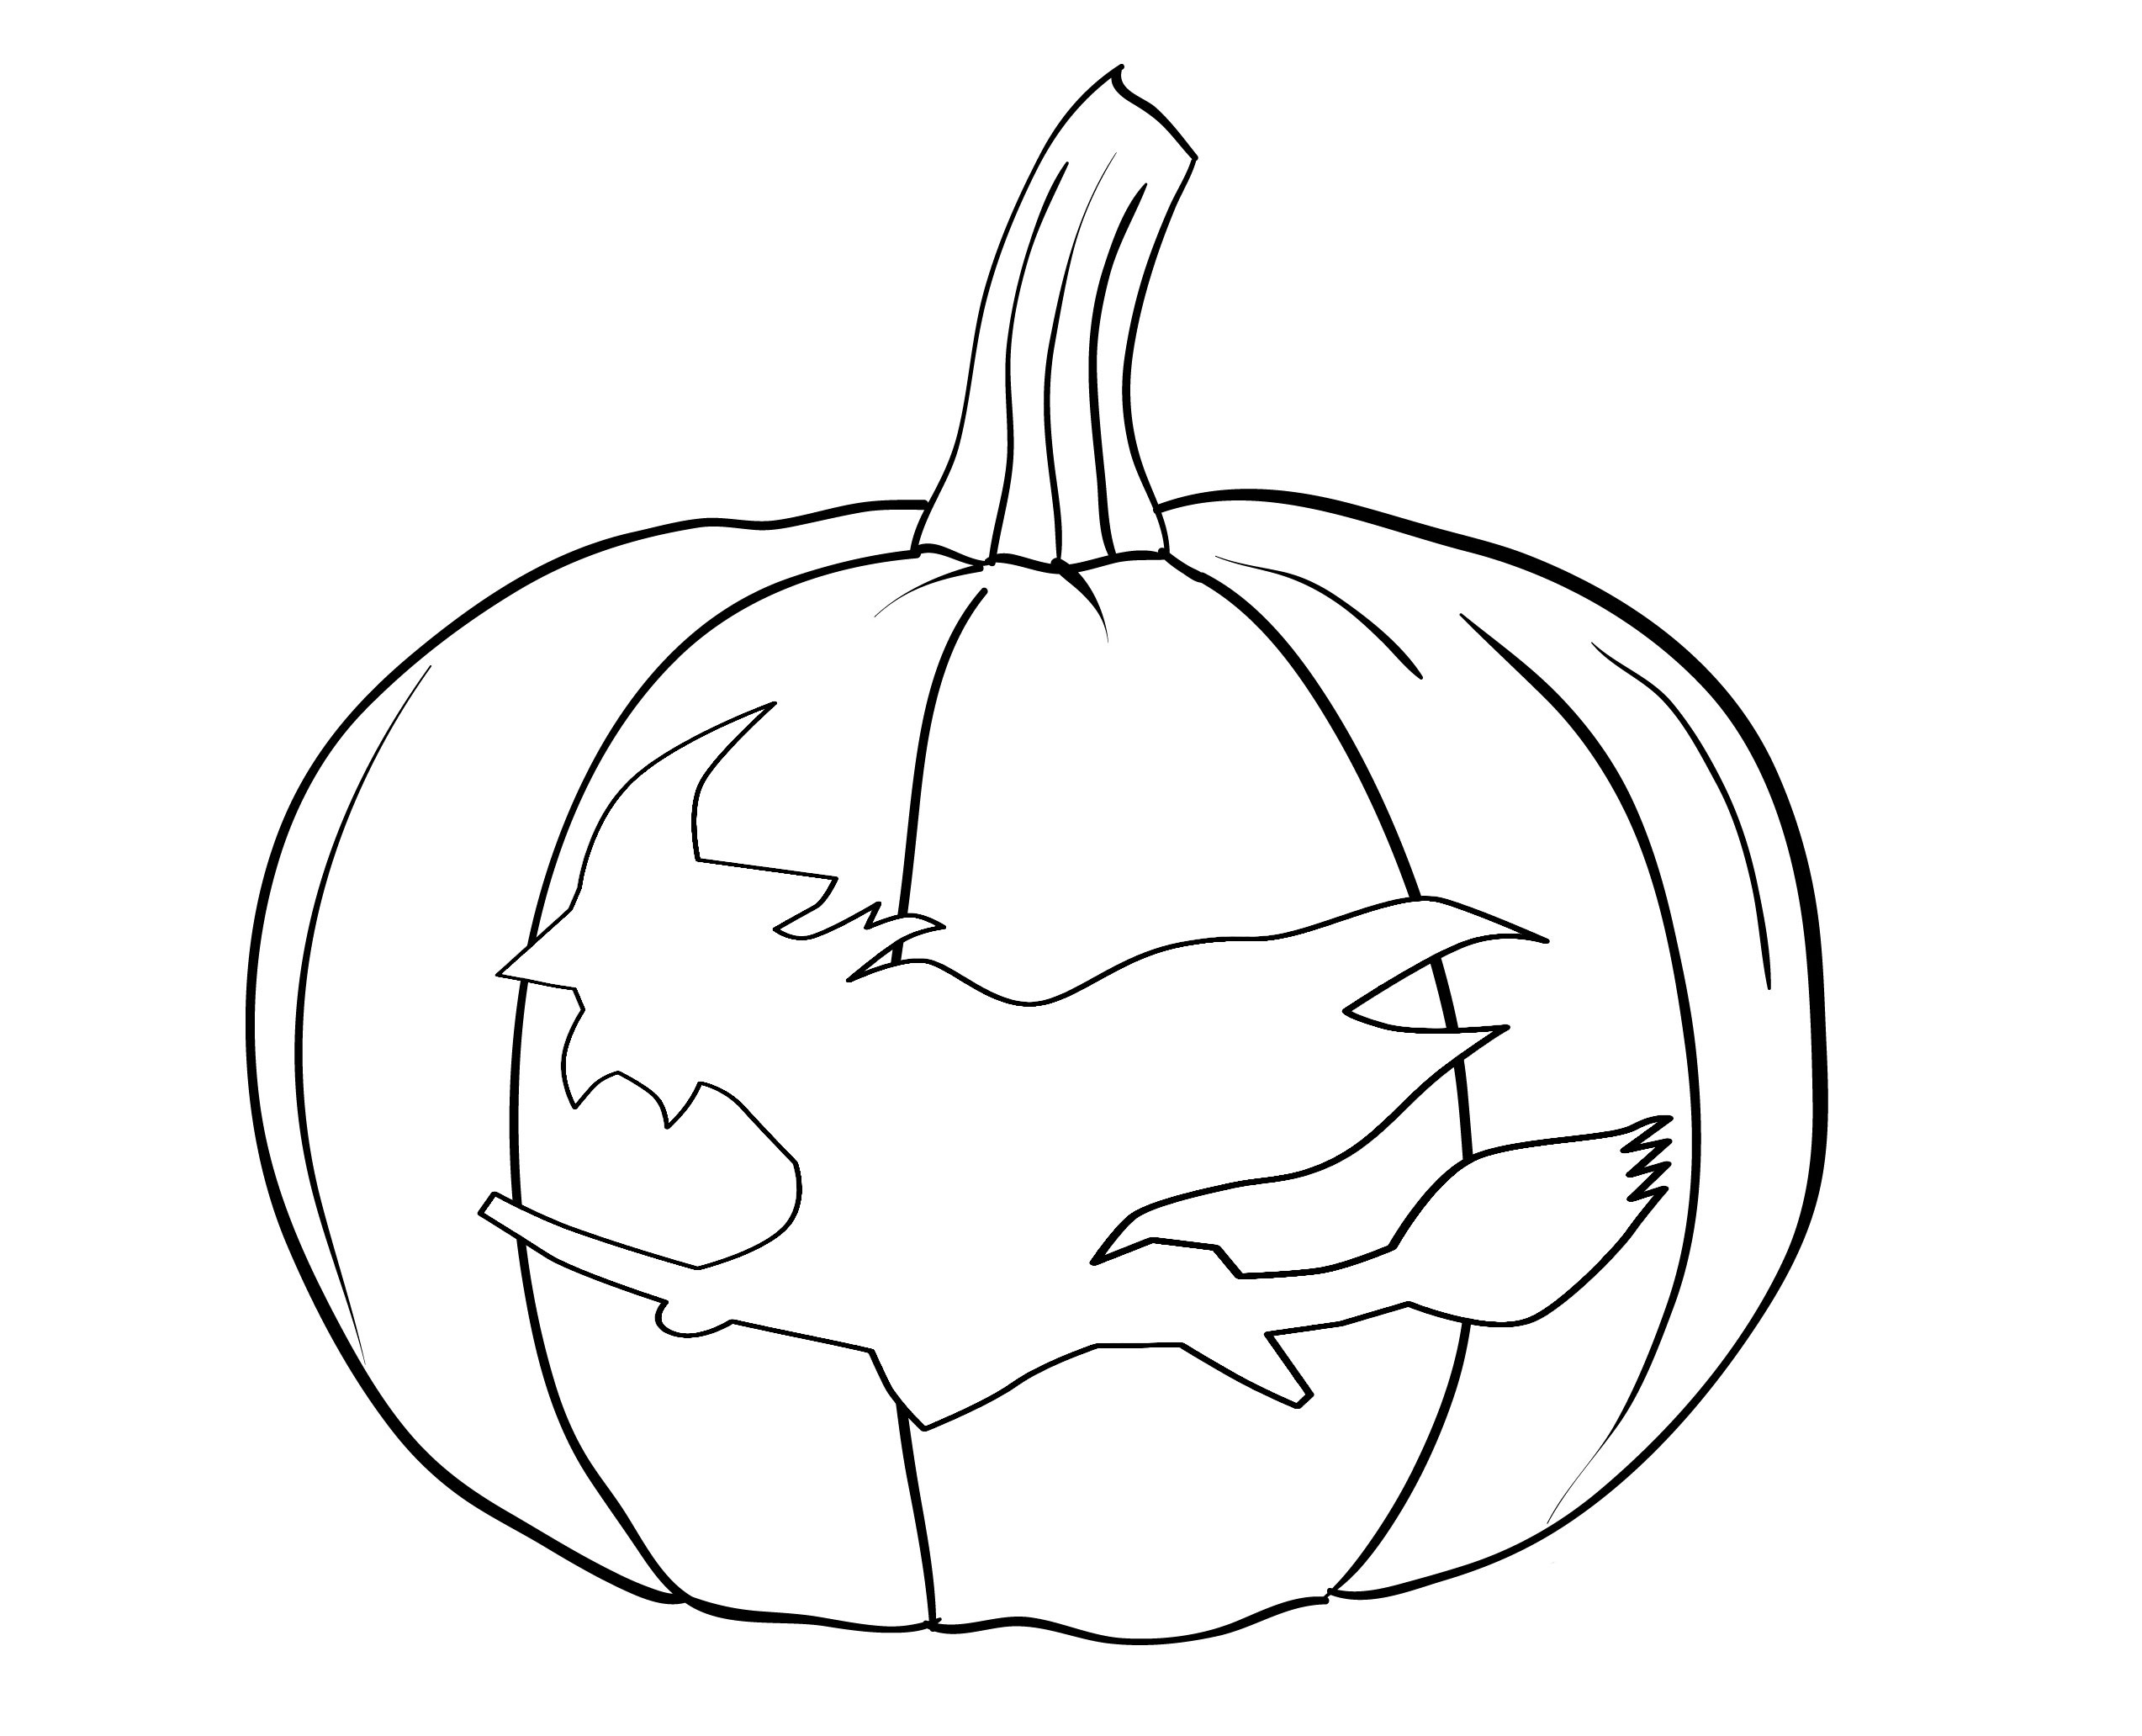 halloween pumpkin pictures to print and color pumpkin coloring pages getcoloringpagescom to pictures print halloween color and pumpkin